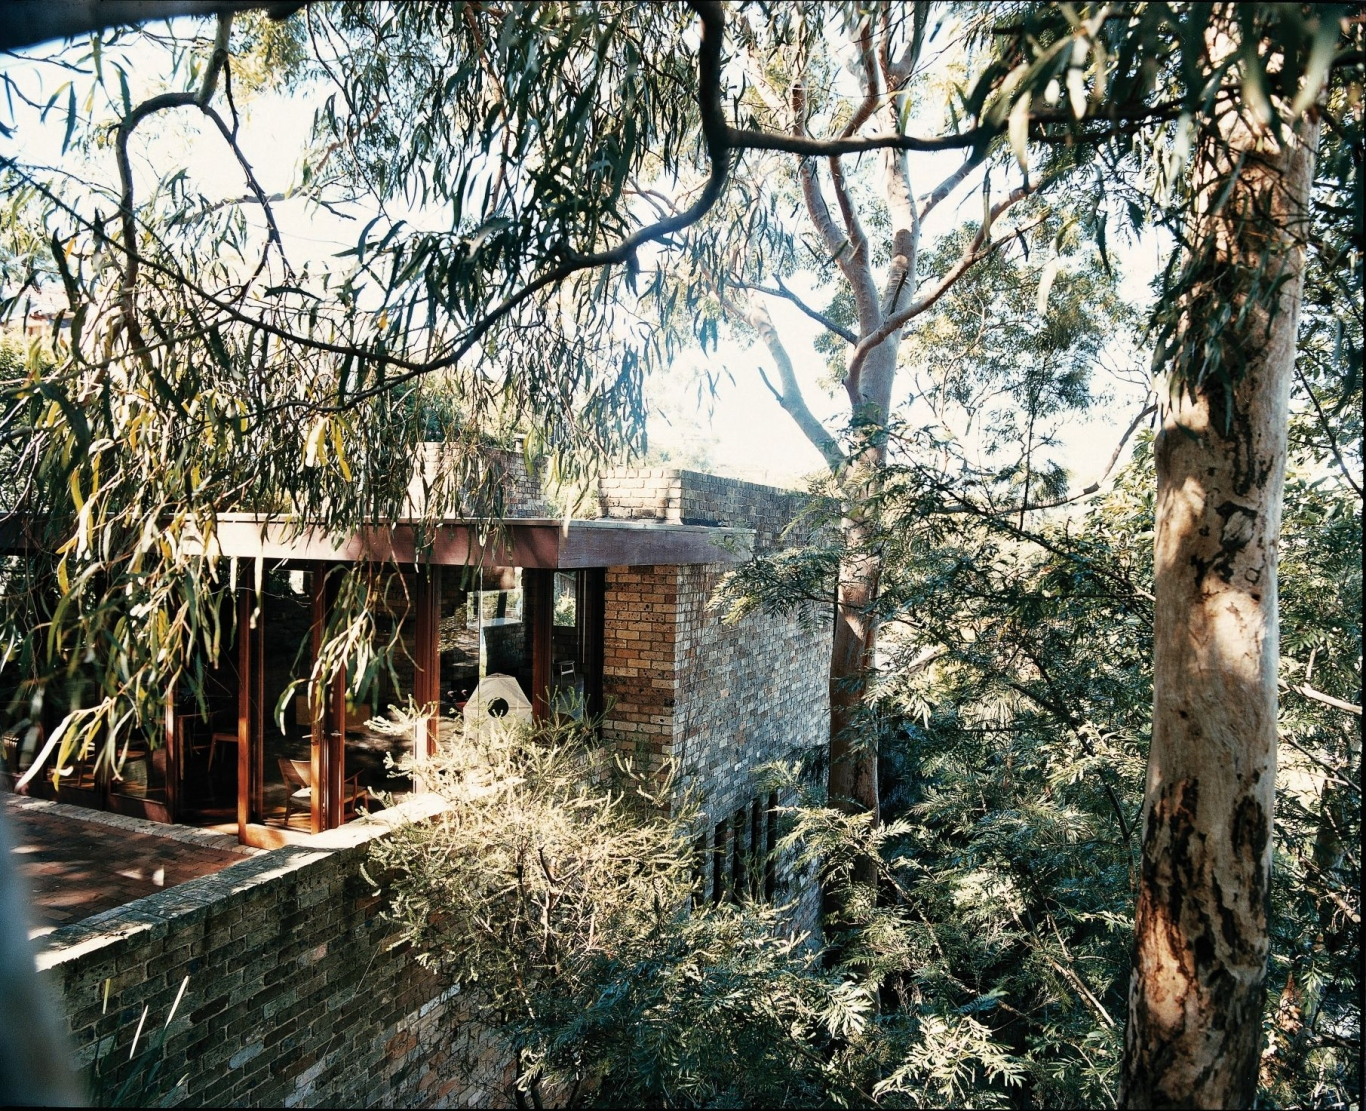 This is a colour photograph of a light brick building surrounded by native trees